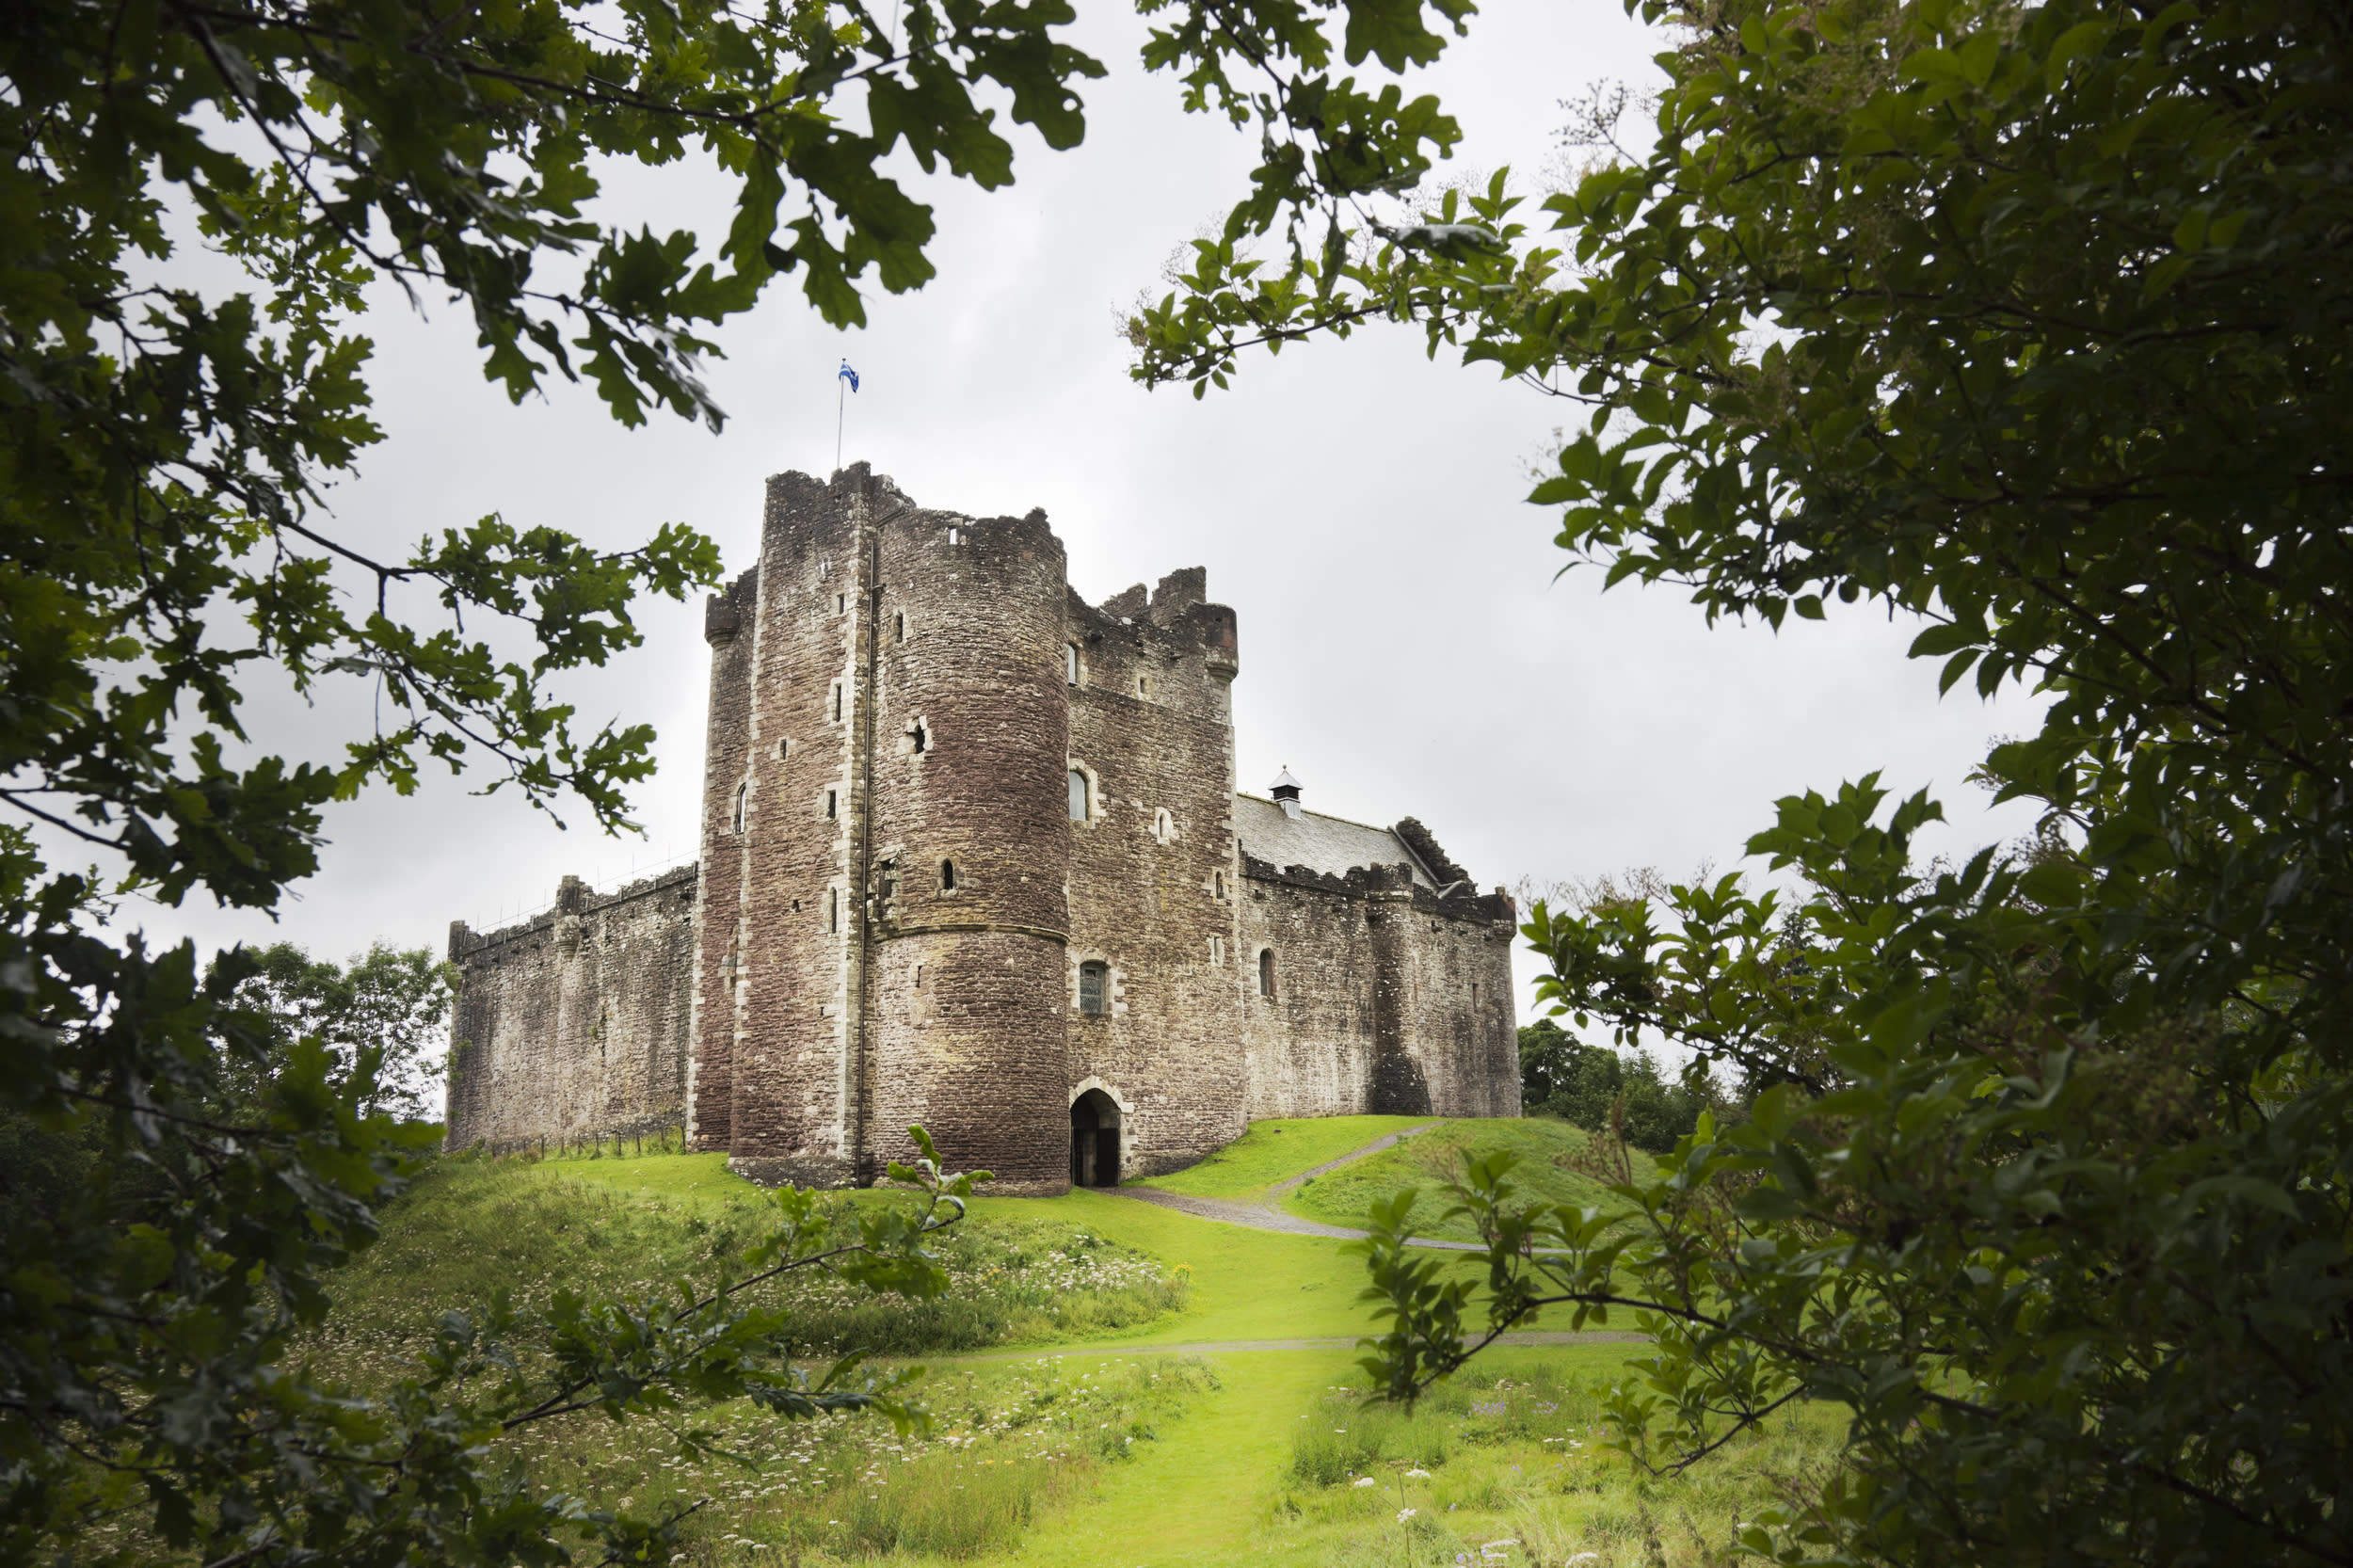 """<p><strong>GOT location</strong>: Winterfell</p>  <p><strong>Real life location</strong>: Doune Castle, Scotland</p>  <p>The home of the Starks, Winterfellis actually a composite of both Doune Castle in Scotlandand Castle Ward in North Ireland.</p>  <p><a href=""""https://fave.co/2Pd3BtU""""><strong>Book your trip.</strong></a></p>"""